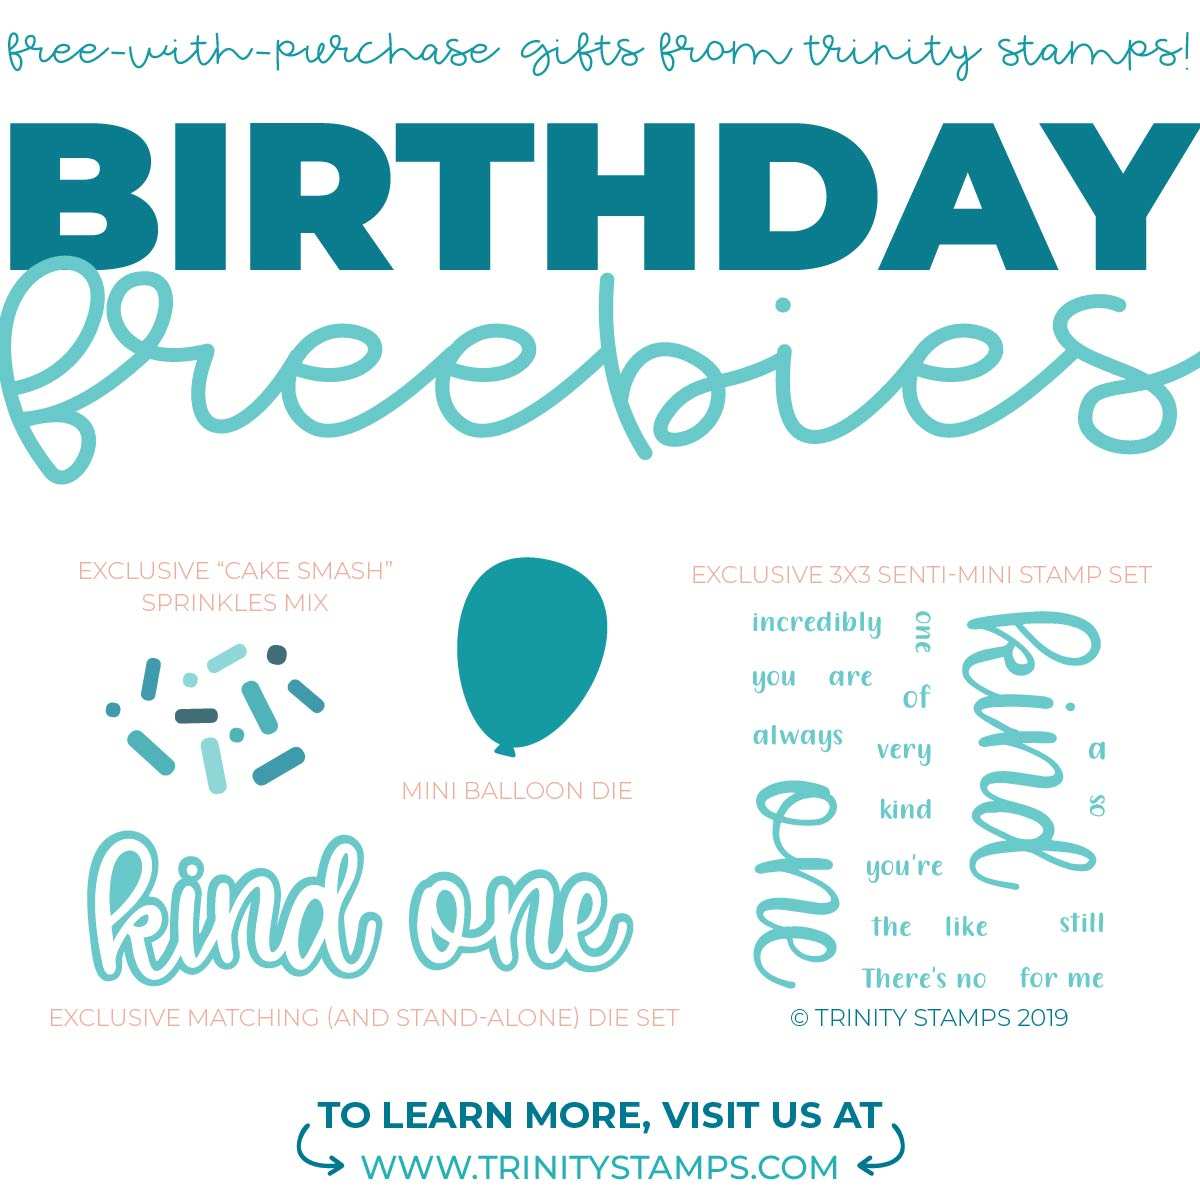 Trinity Stamps Birthday Freebie.jpg